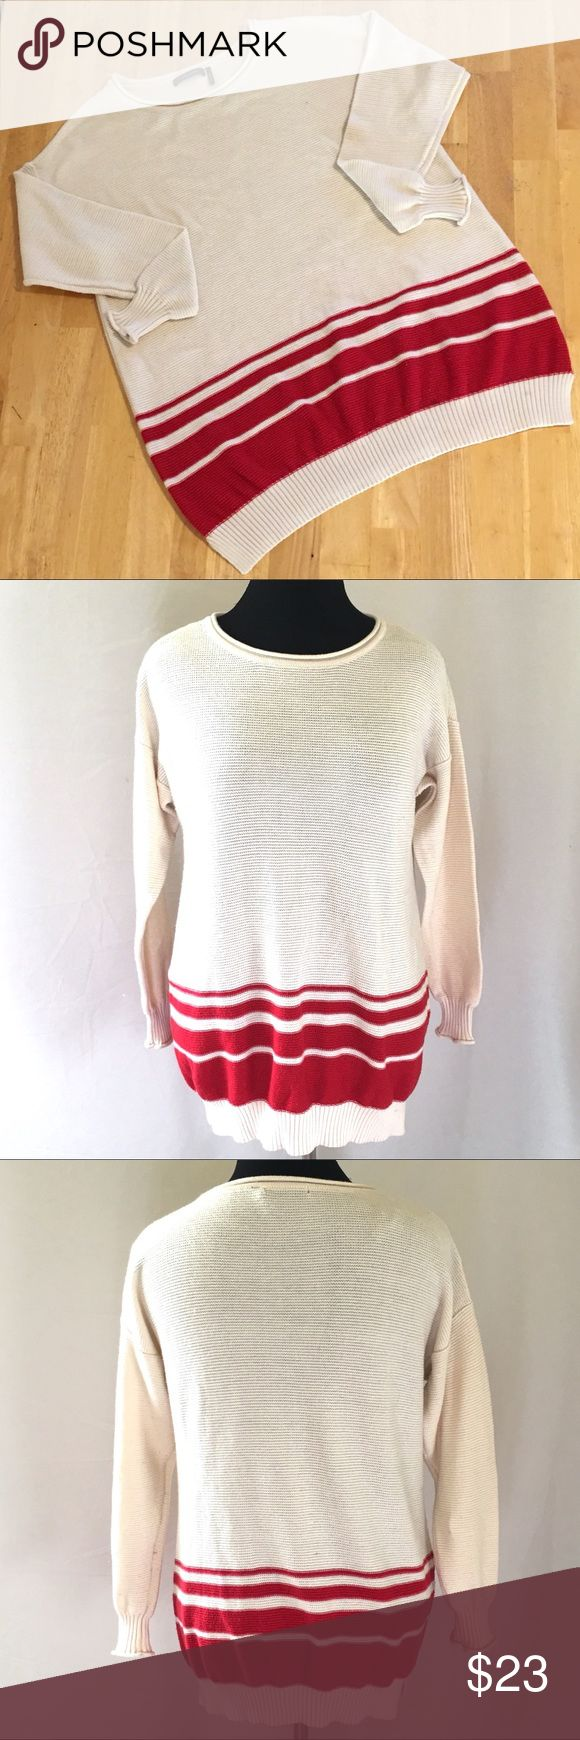 🆕 Daisy Fuentes Crew Neck Boyfriend Sweater Daisy Fuentes Crew Neck Boyfriend Sweater. Ivory with Stylish Red Stripes. Materials: 60% Cotton/40% Acrylic. Tagged as Size XL but, Runs Big. Daisy Fuentes Sweaters Crew & Scoop Necks